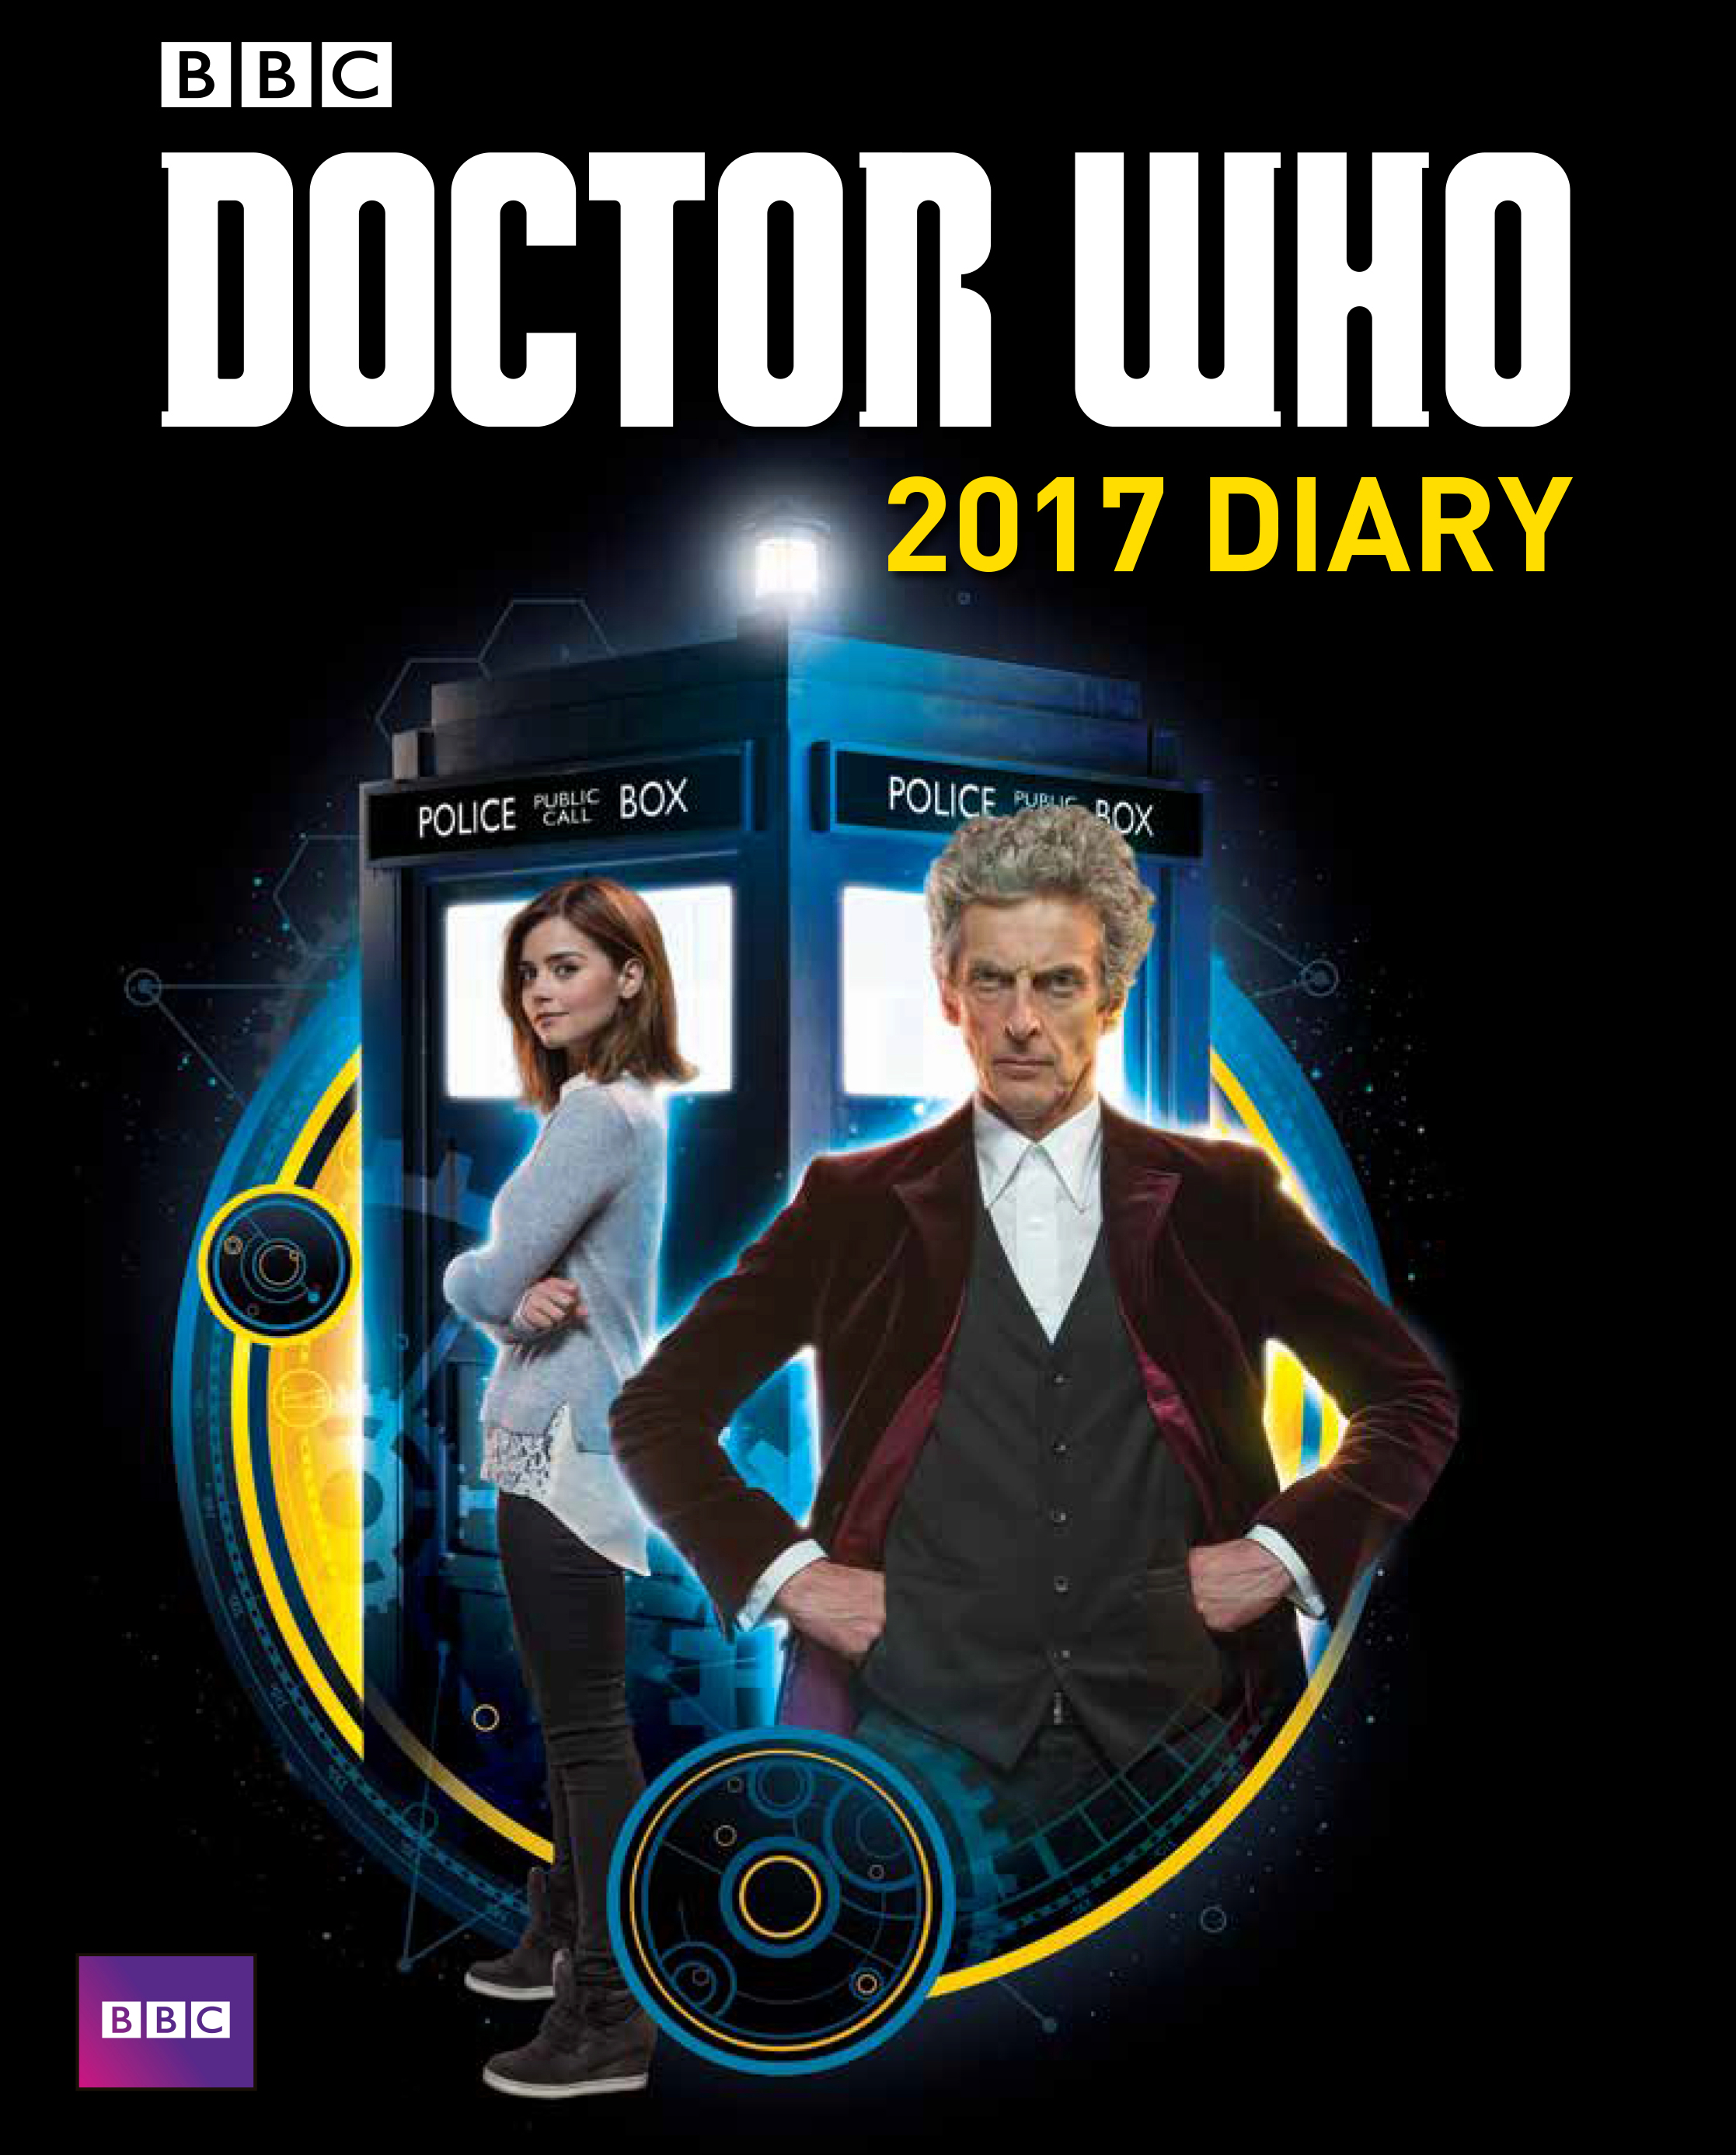 DOCTOR WHO DIARY 2017 ED